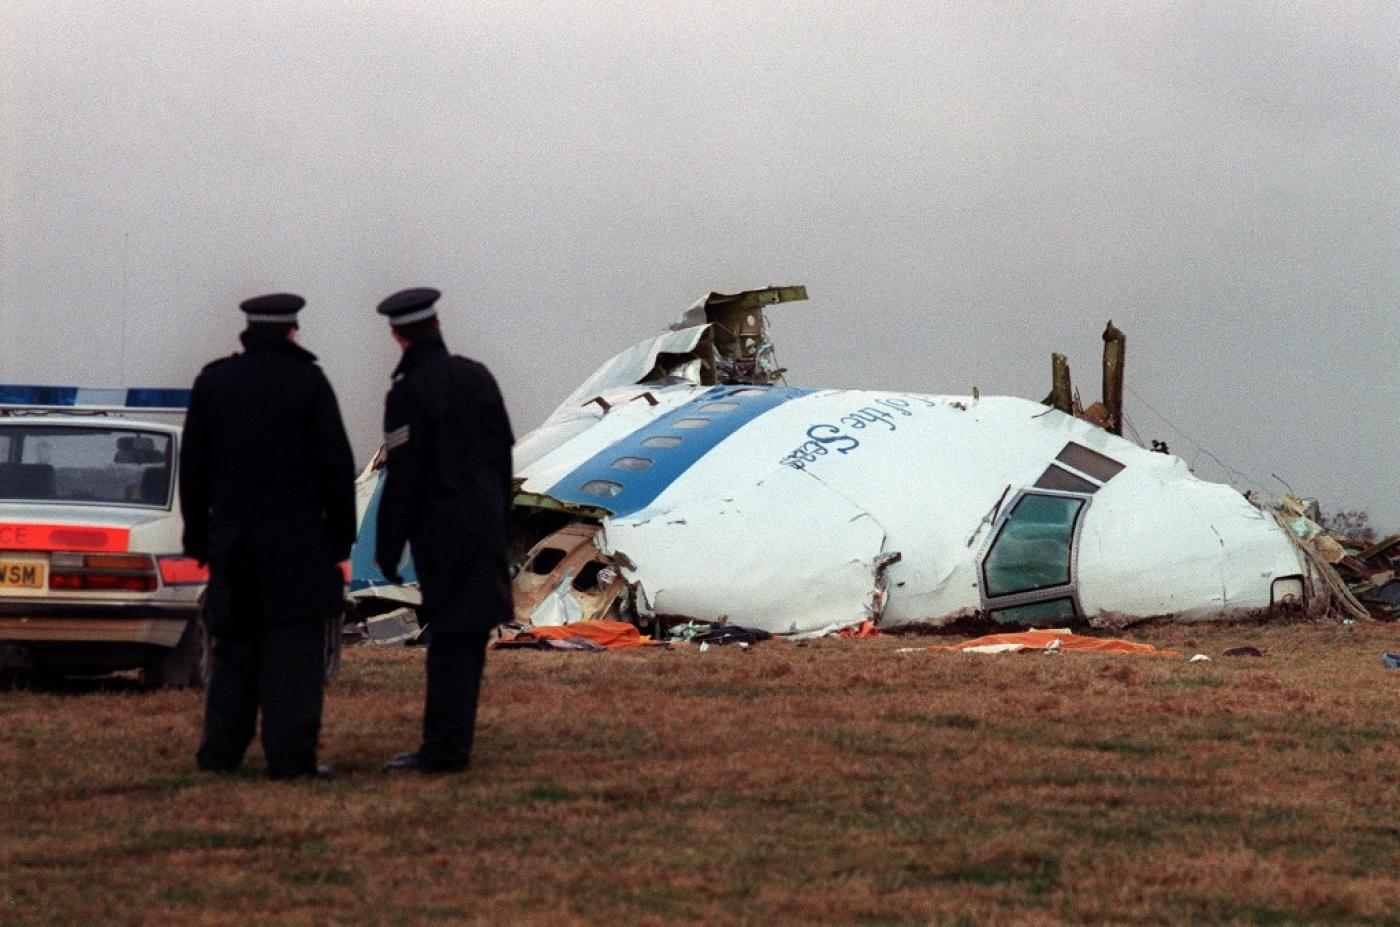 Lockerbie: Man charged as 'third conspirator' on 32nd anniversary of attack